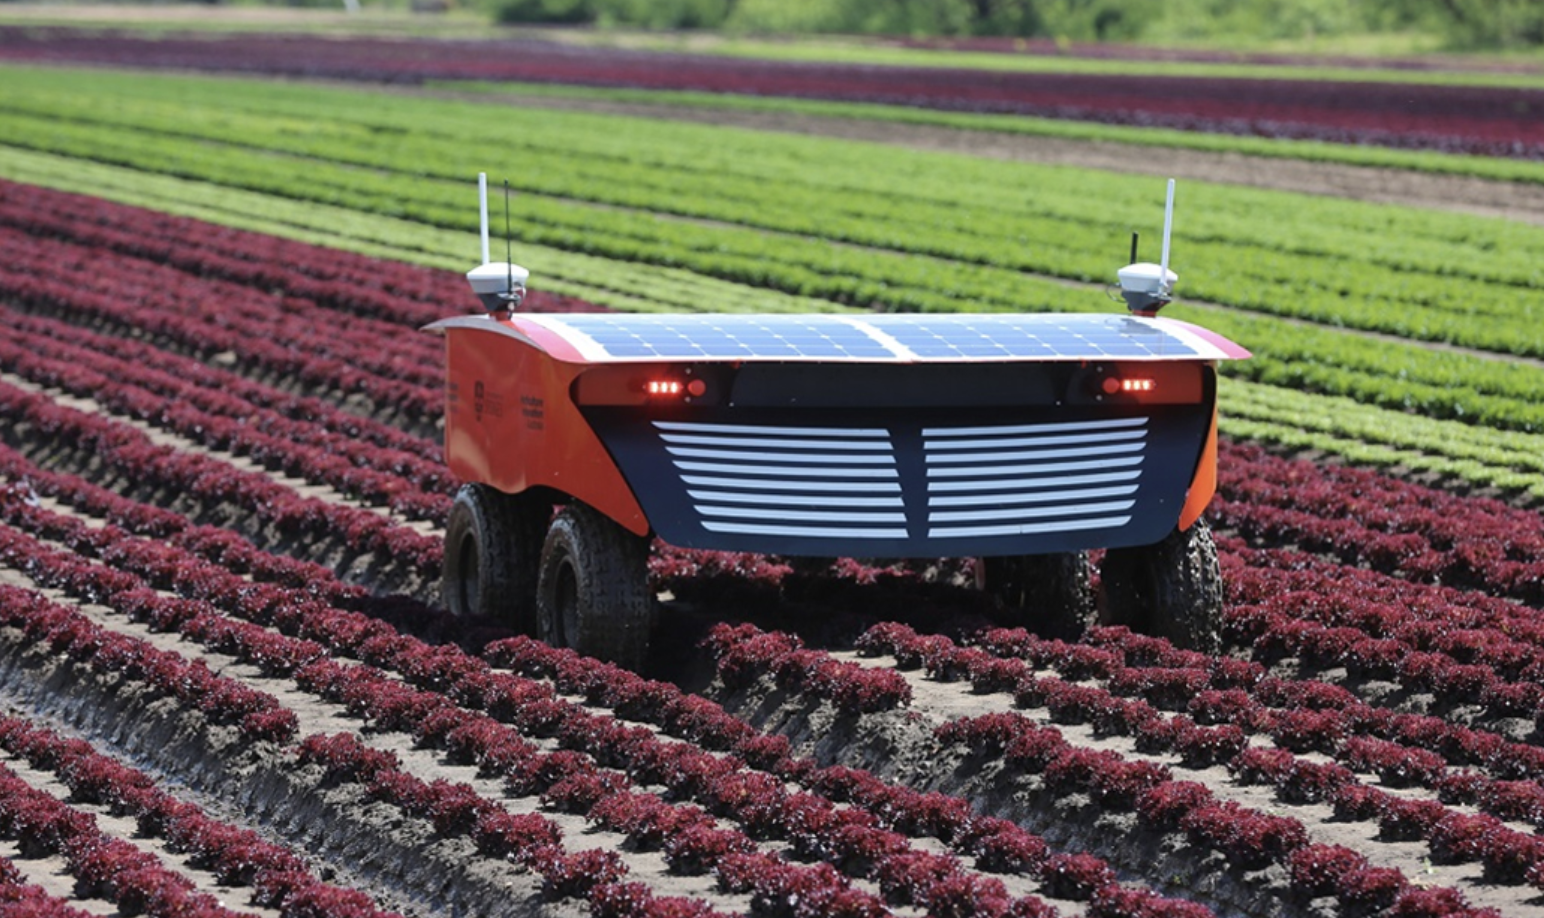 Robotic application in Agriculture